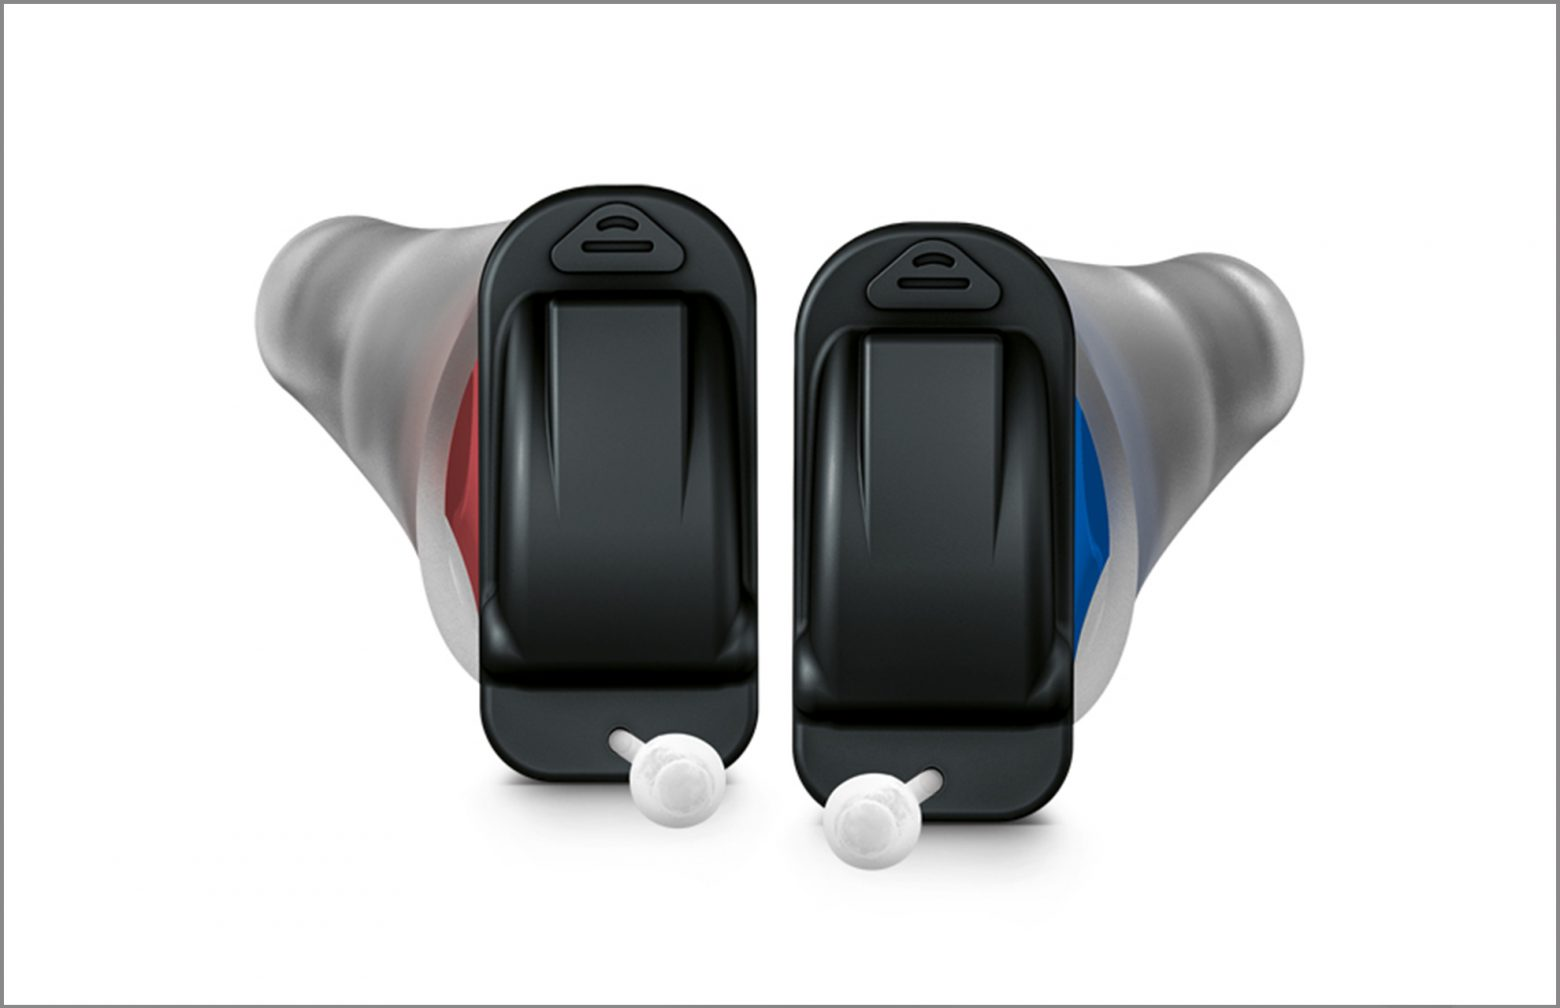 Pair of Signia Click-CIC hearing aids